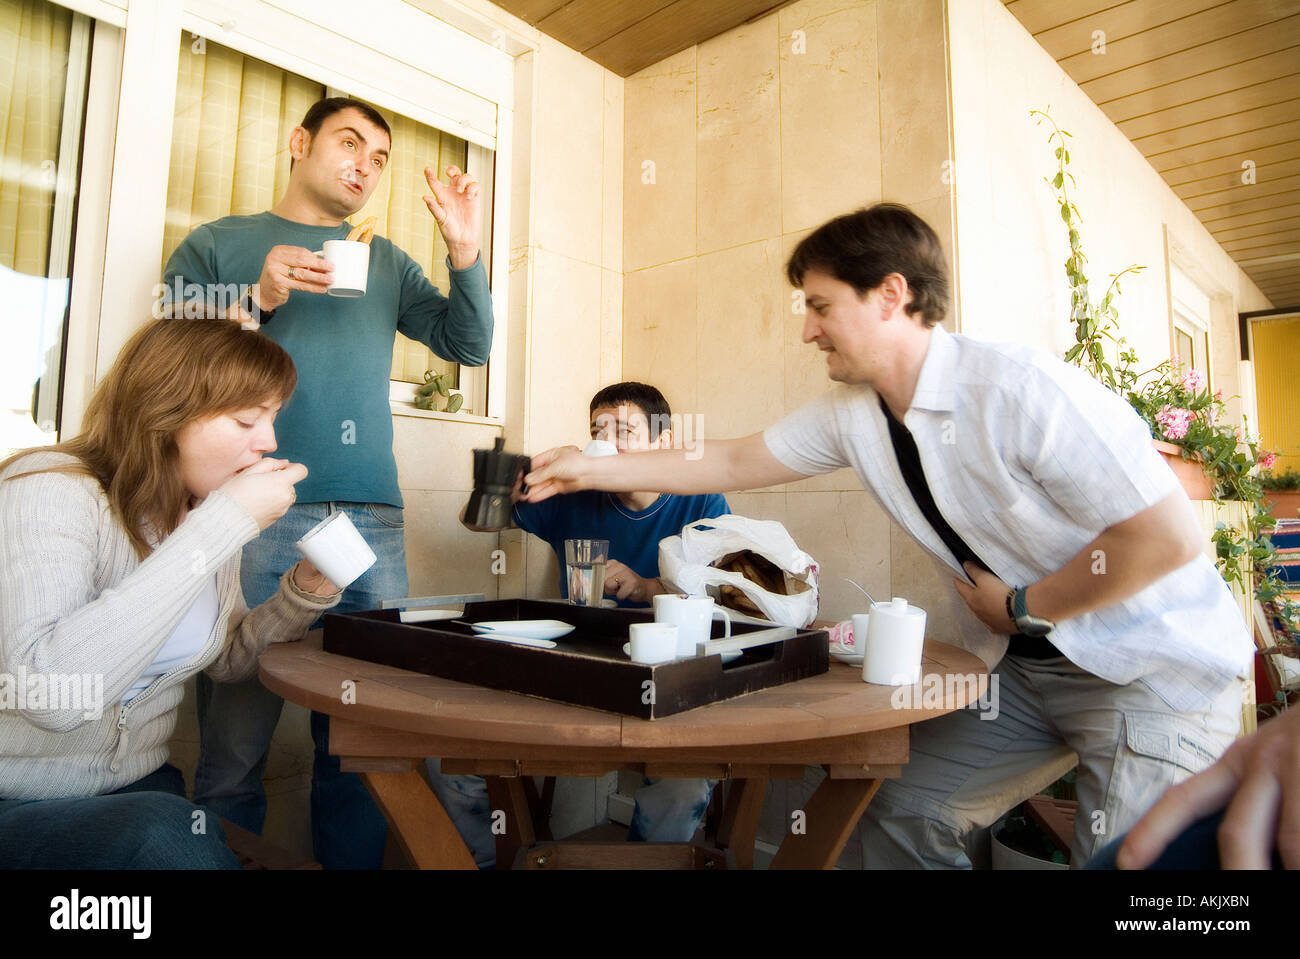 Group of friends having breakfast together Stock Photo